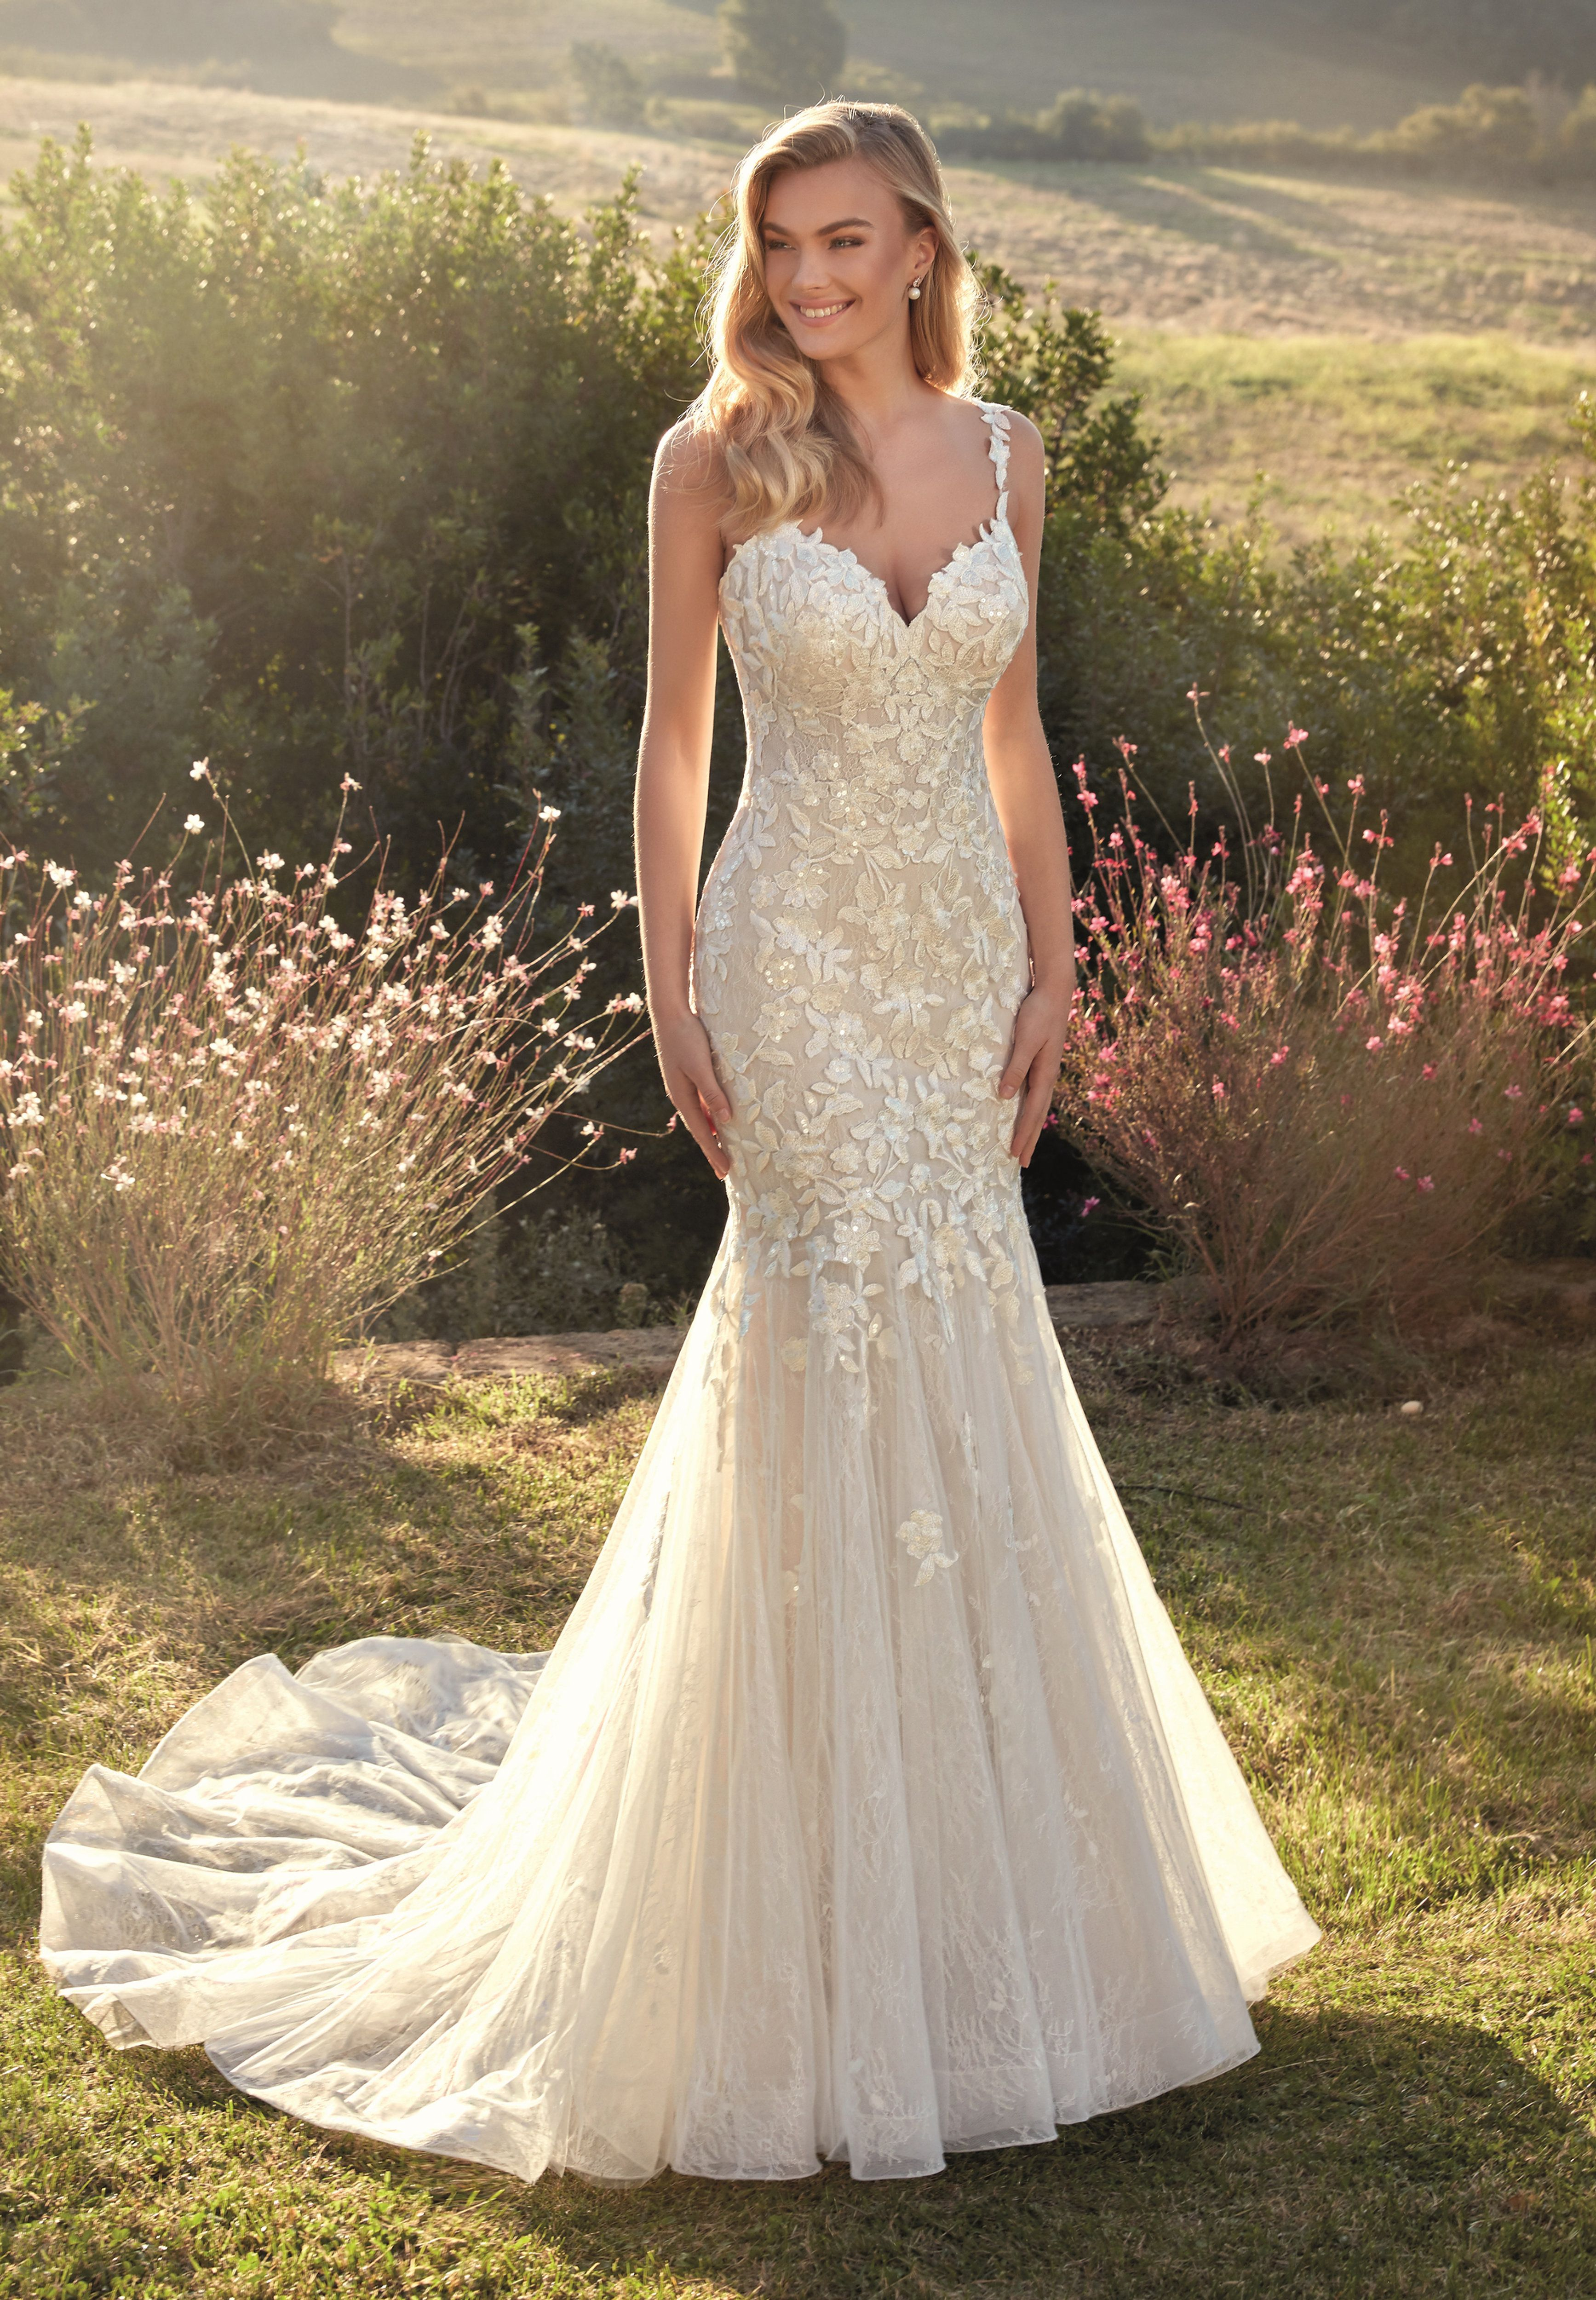 Ivory Lace Fit Flare Bridal Gown Size 10 In 2021 Mermaid Style Wedding Dress Timeless Wedding Dress Bridal Gowns [ 5000 x 3470 Pixel ]